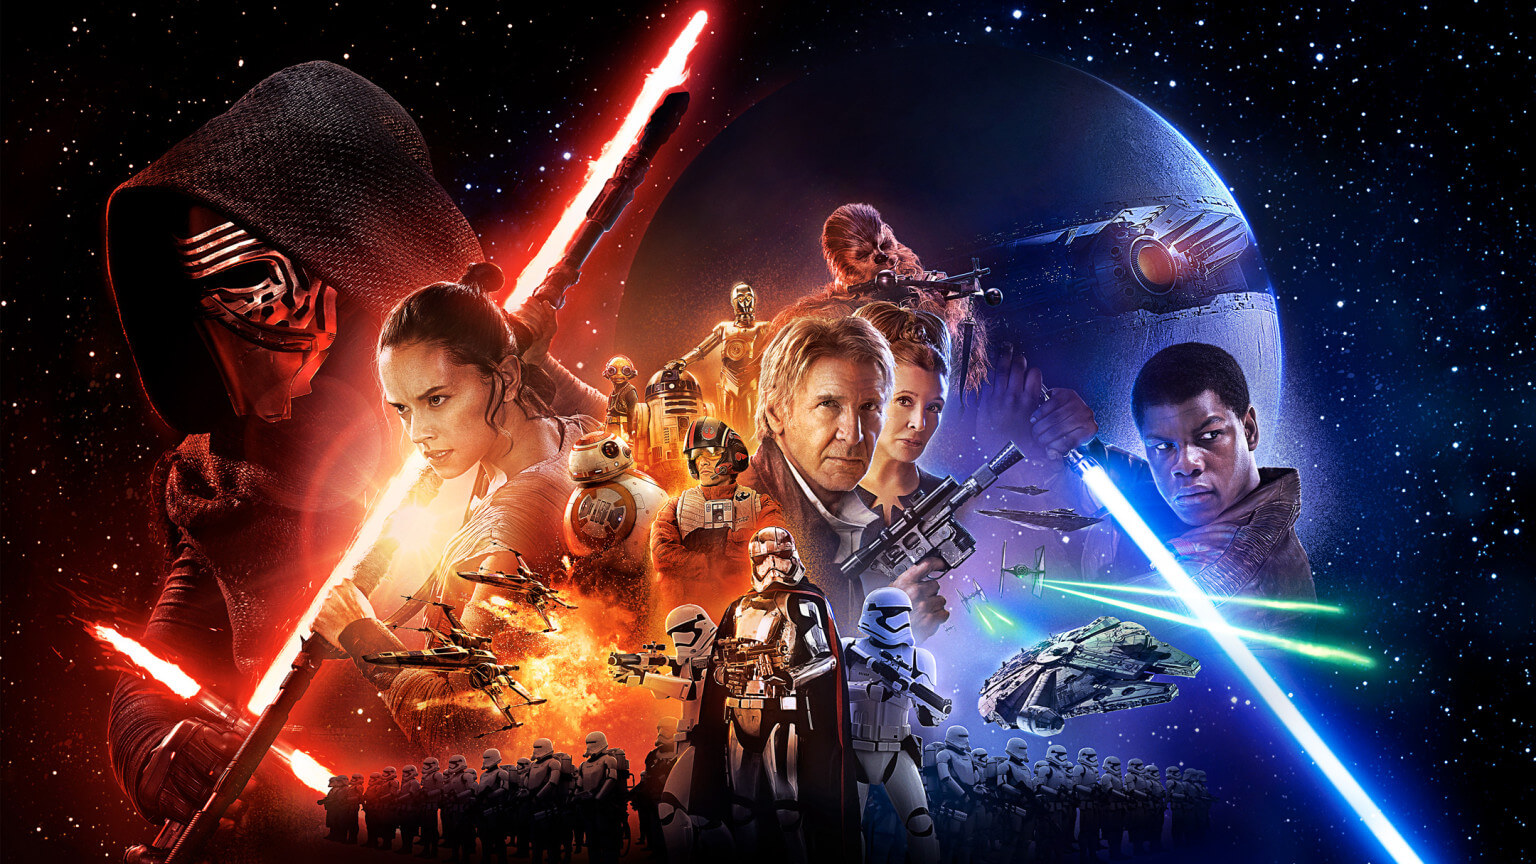 Star Wars: The Force Awakens Forecast 2